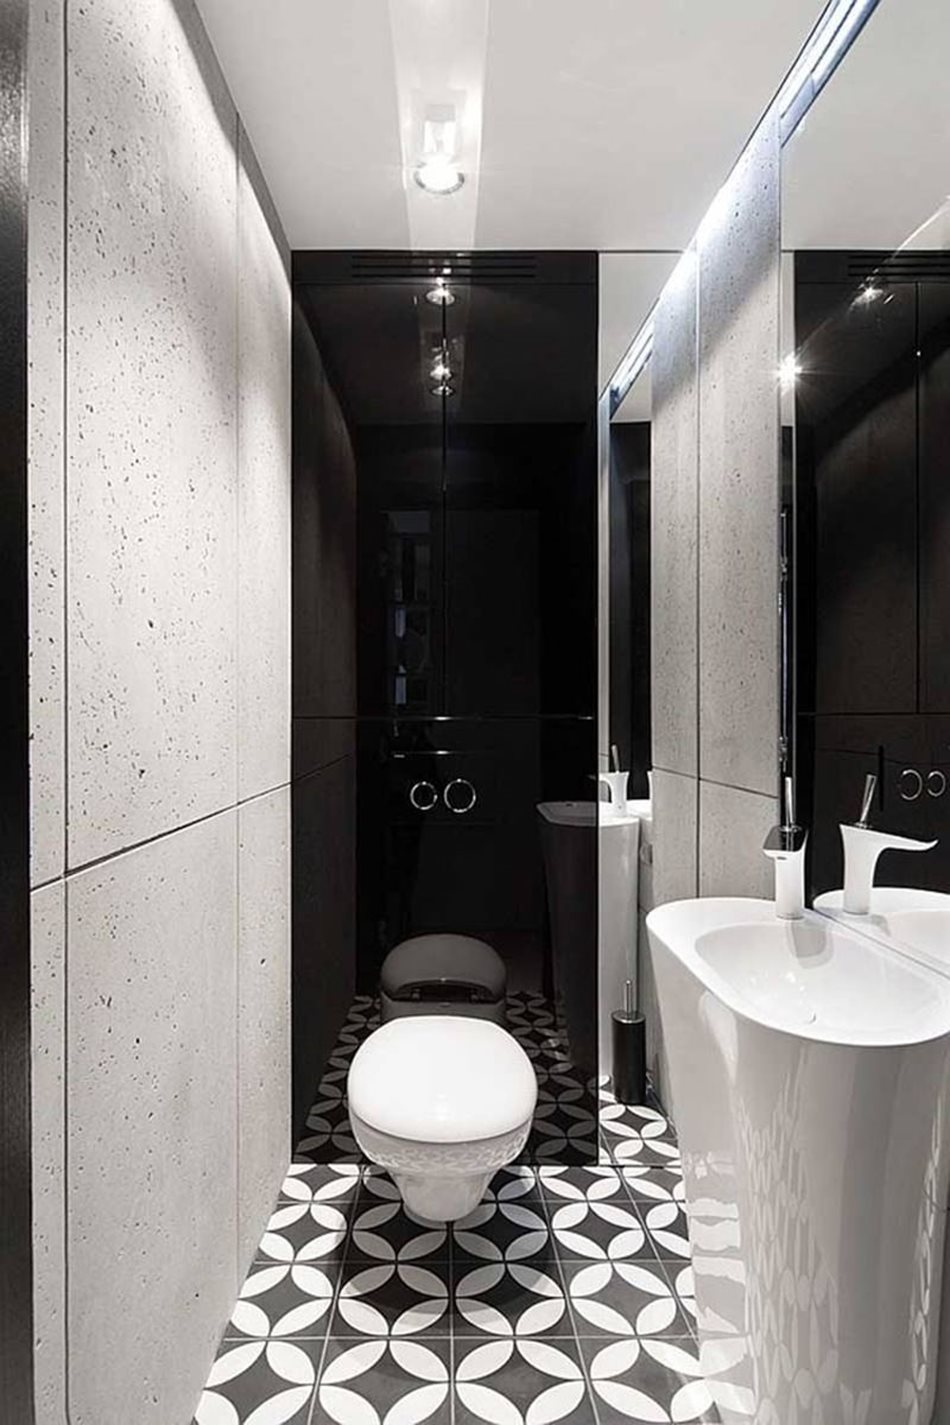 Apartment interior design in black and white colors - Black and white palette looks here very amazing